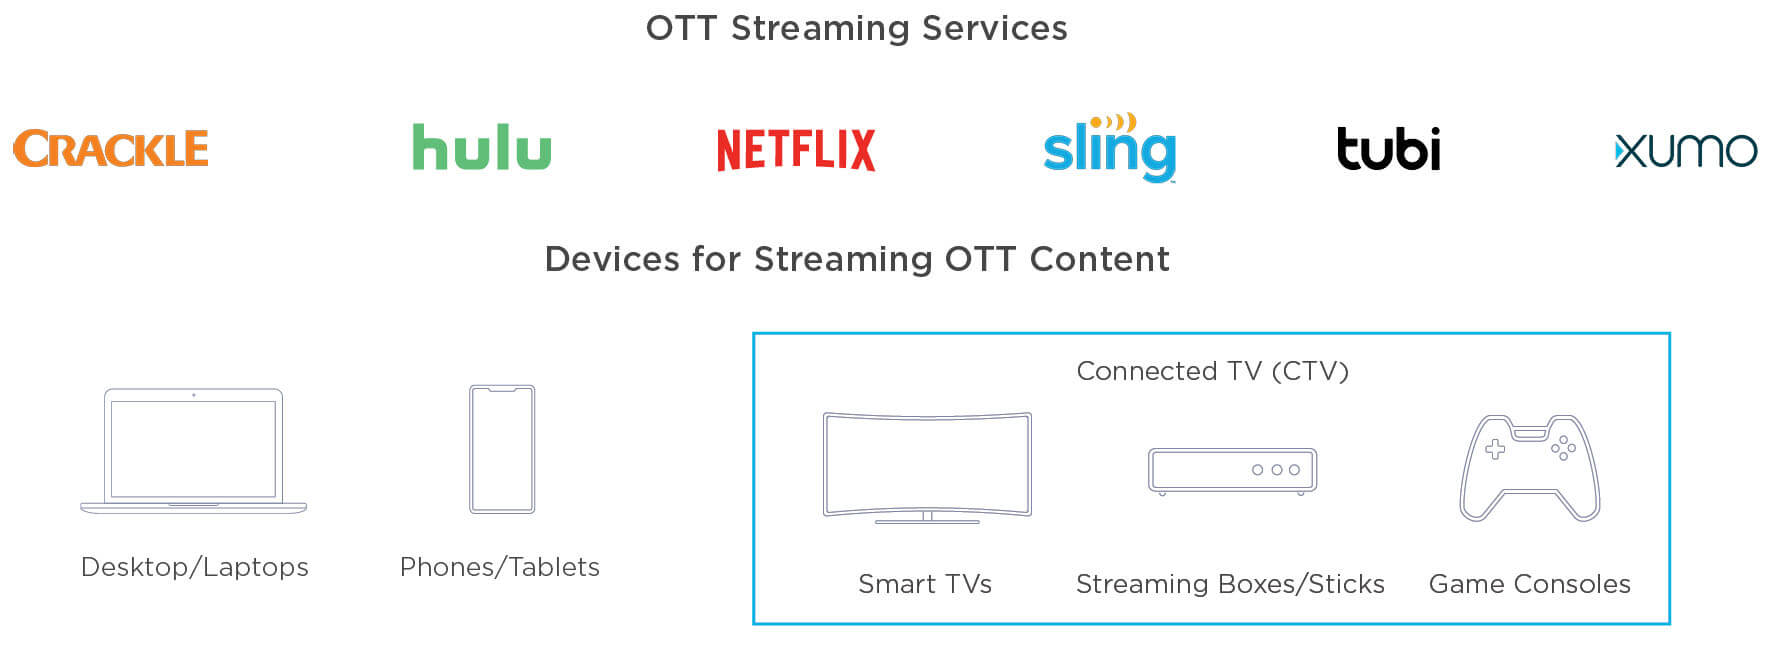 OTT Streaming services and devices